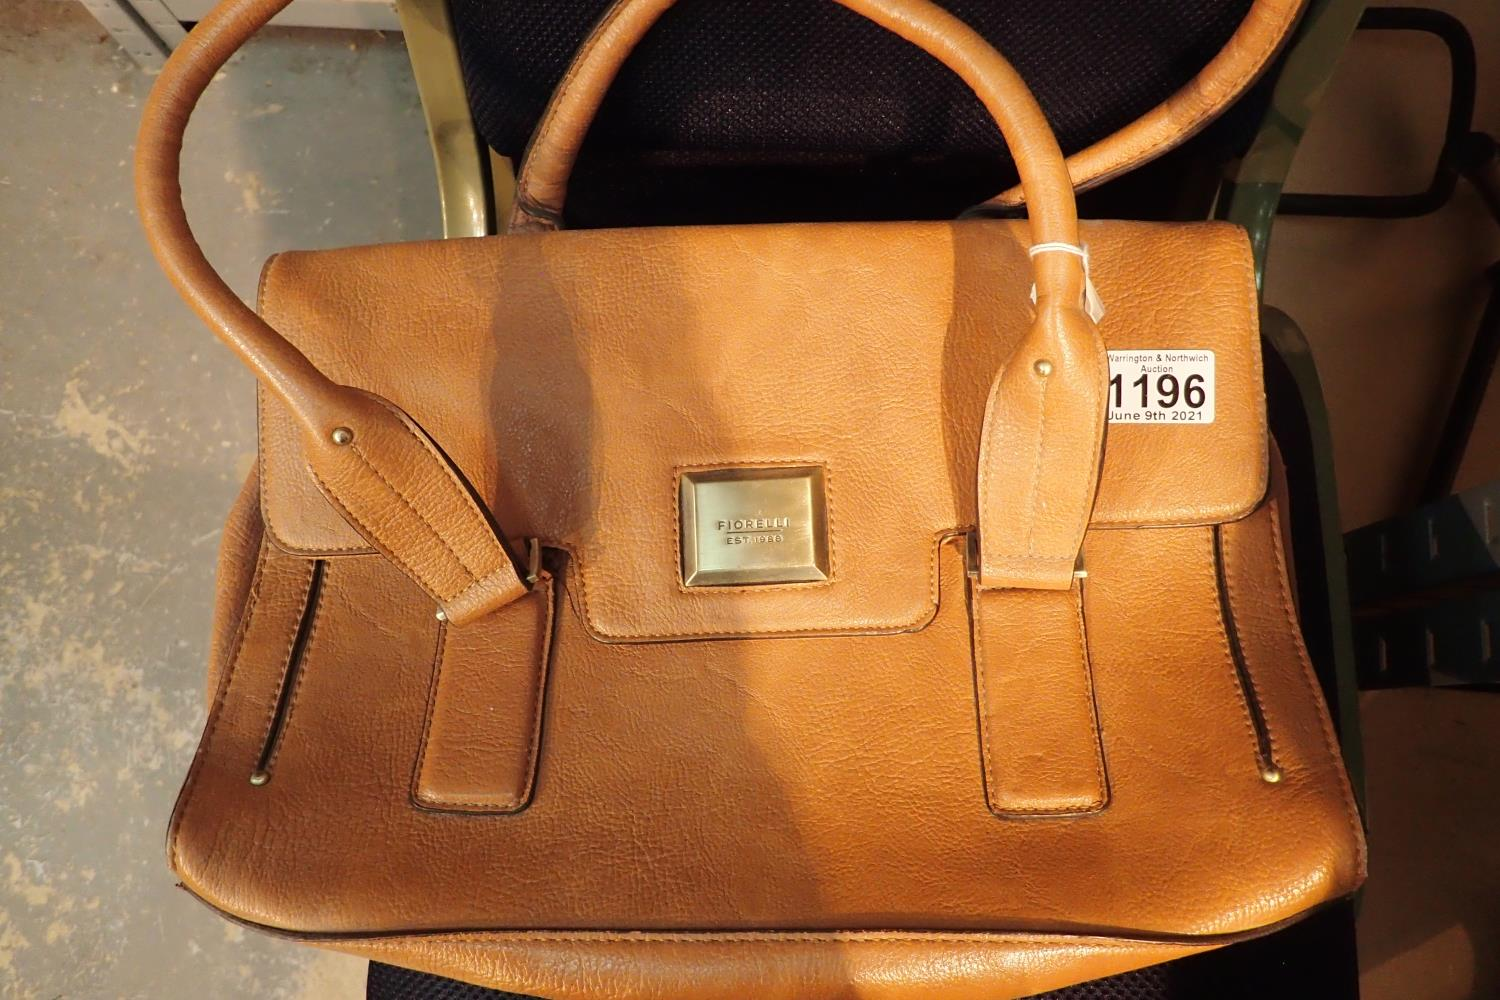 Original tan leather Fiorelli ladies handbag. P&P Group 1 (£14+VAT for the first lot and